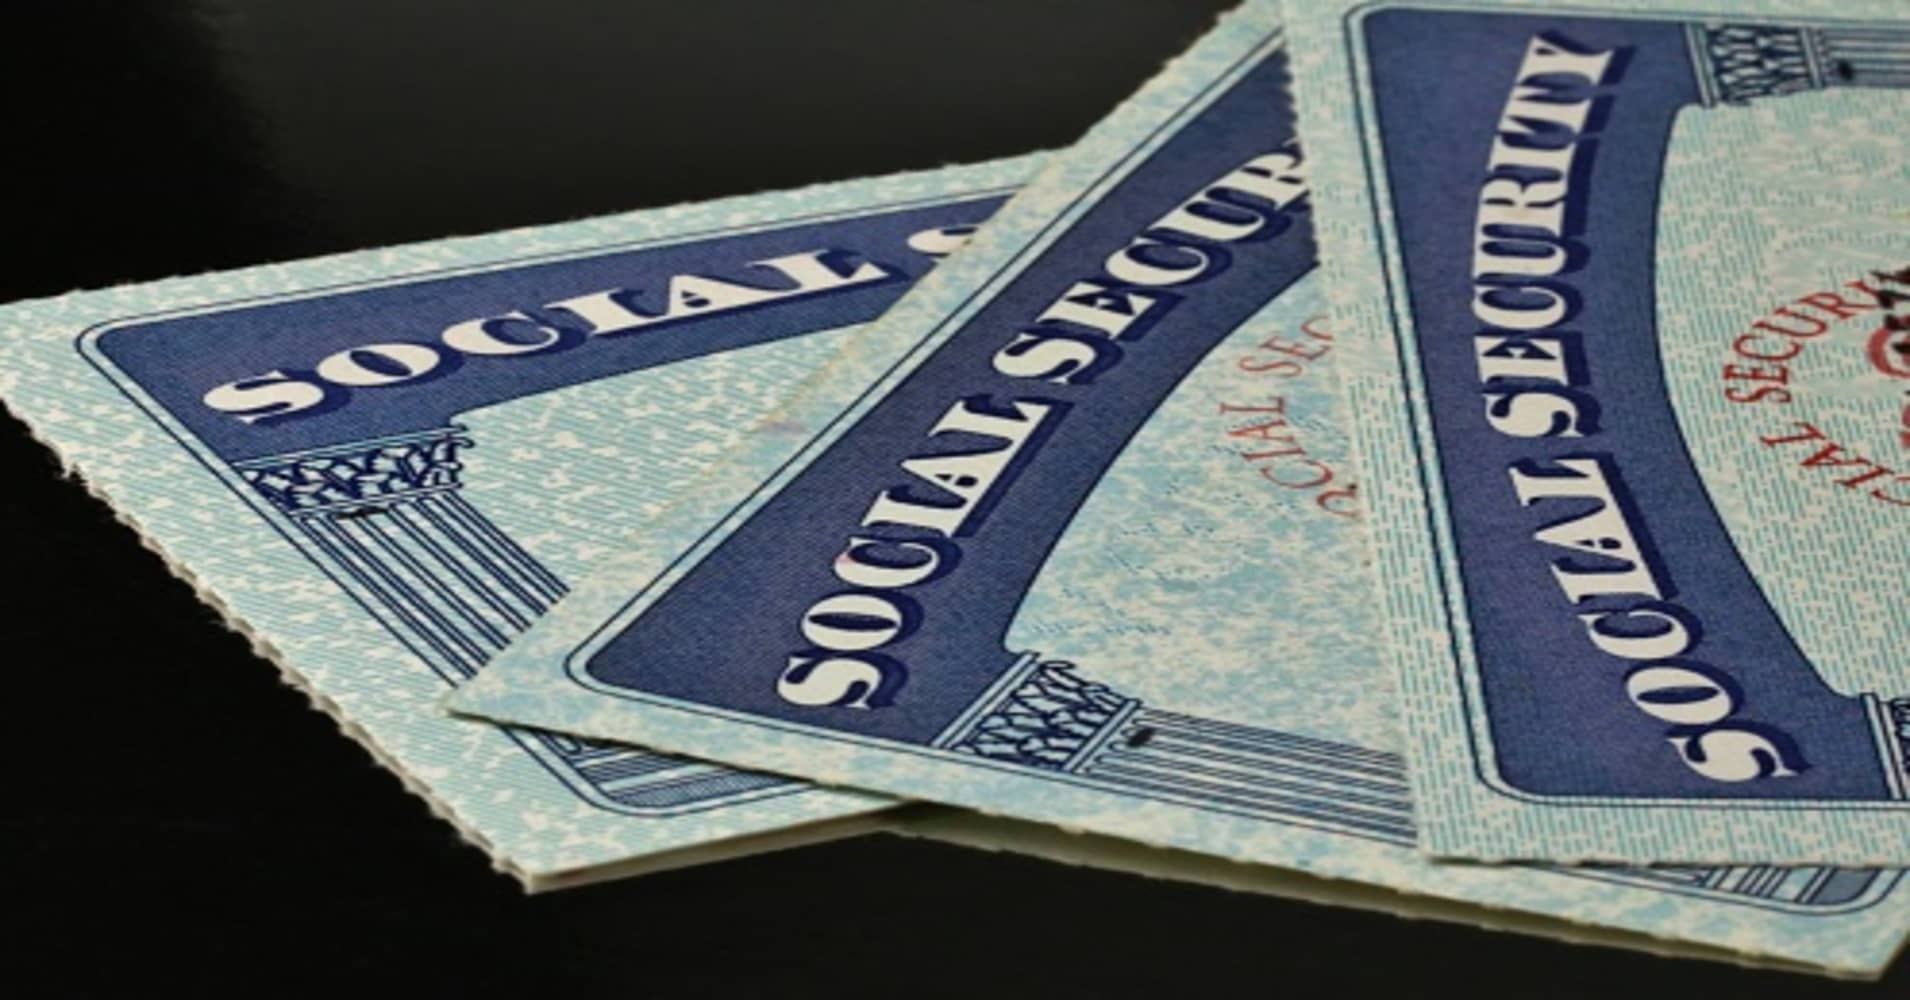 Trustees say Social Security will be insolvent in 2034